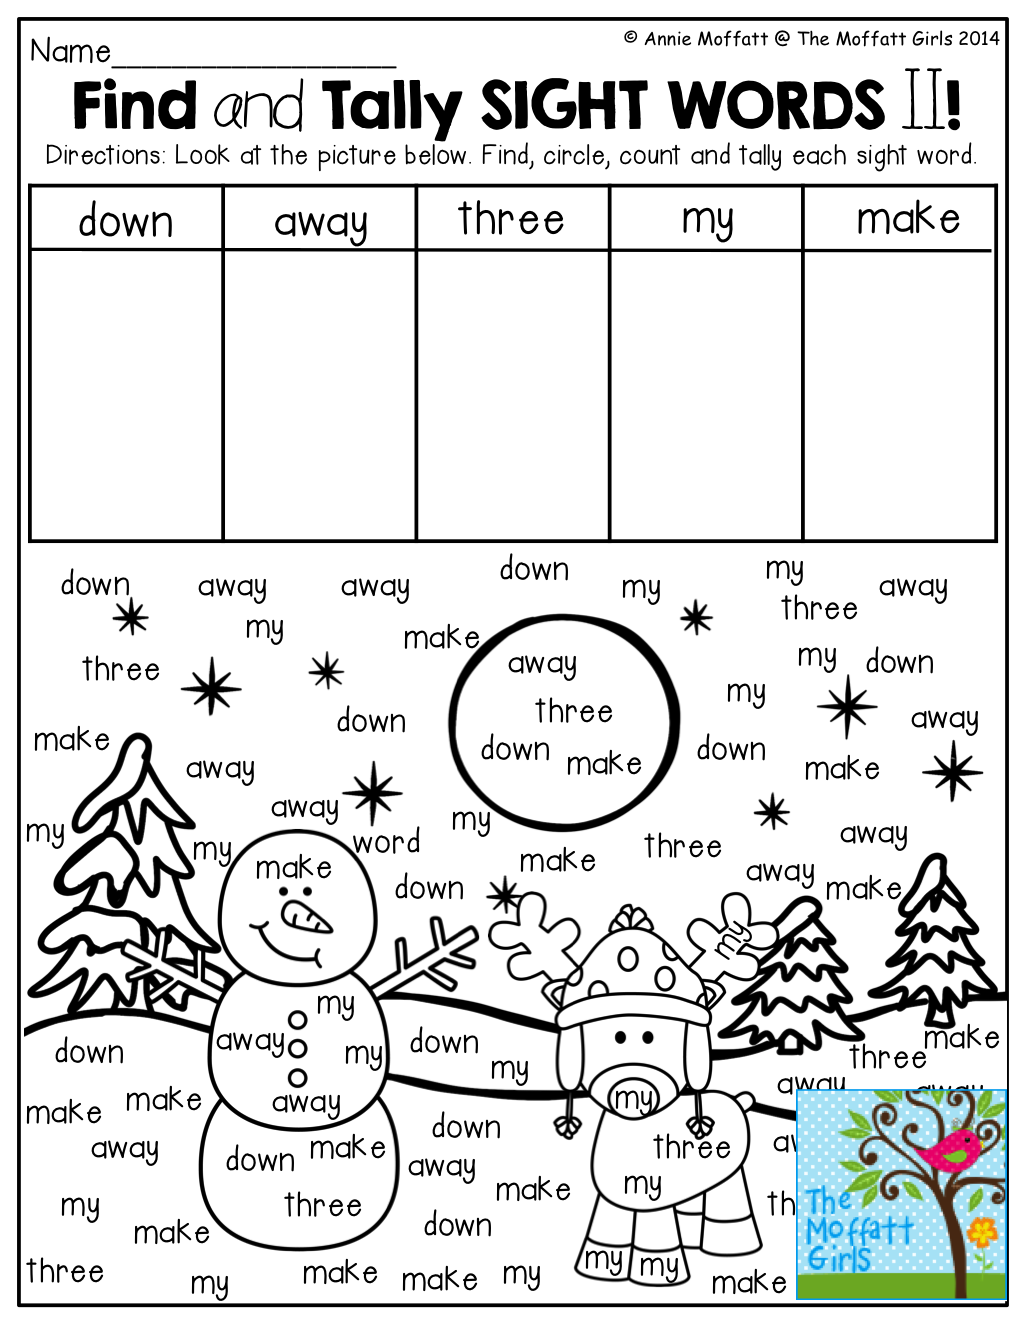 Find And Tally Sight Words From The Picture What A Fun And Effective Way To Work On Sight Word